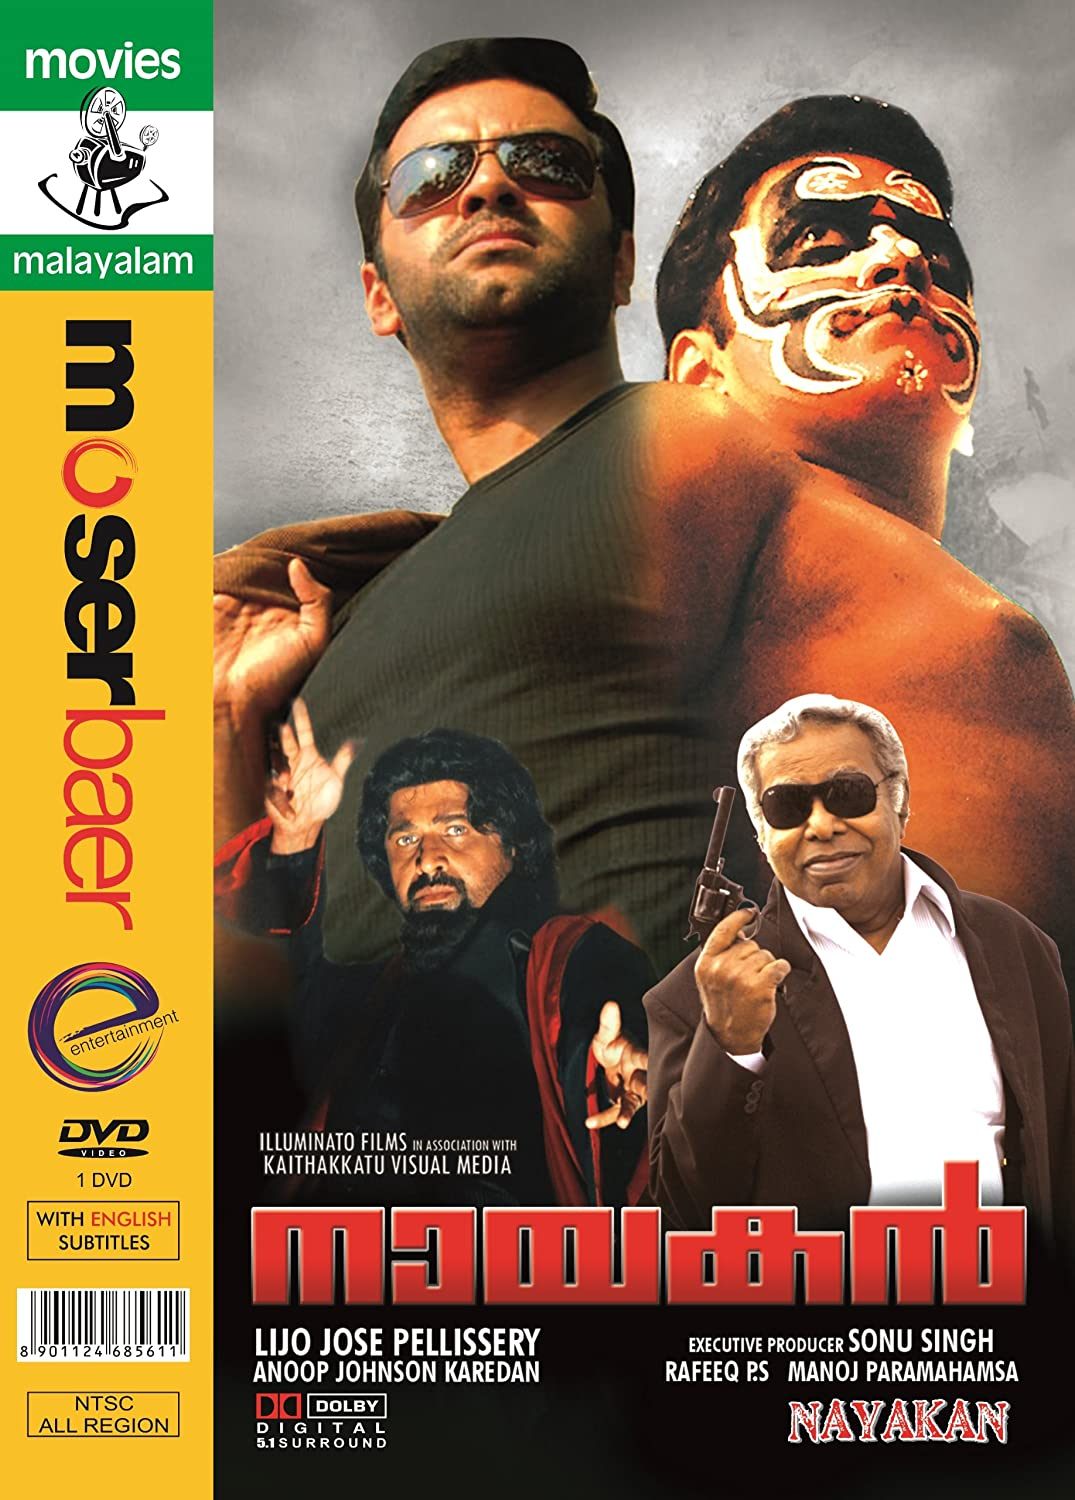 Moserbaer mohanlal 12 hit movies (malyalam) dvd: buy online at.